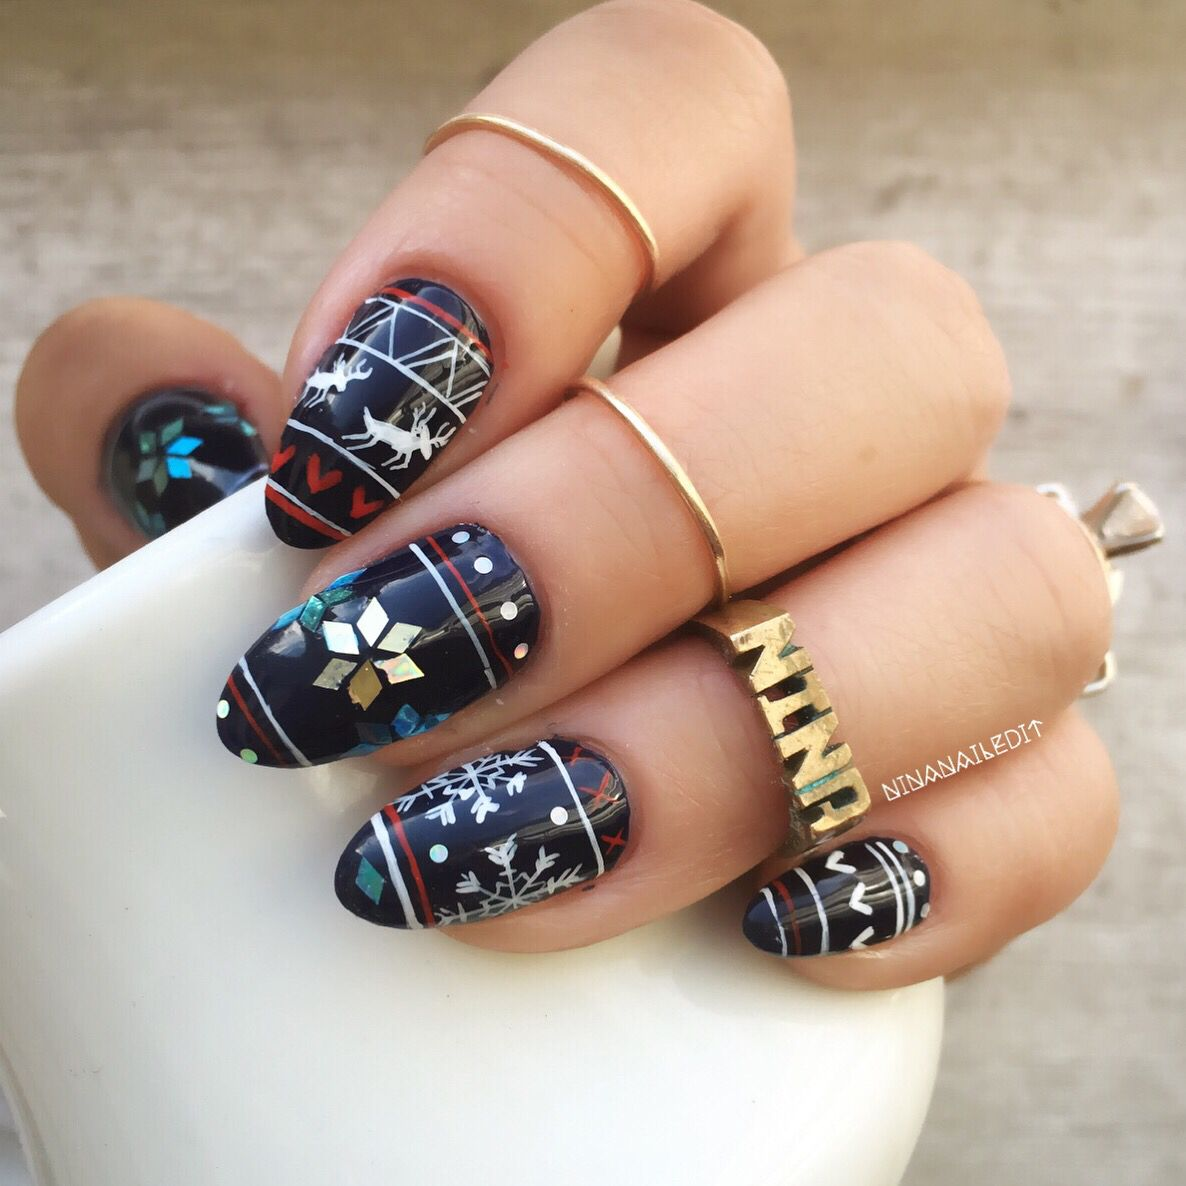 My fave astrowifey inspired fairisle nails Hers are perfection